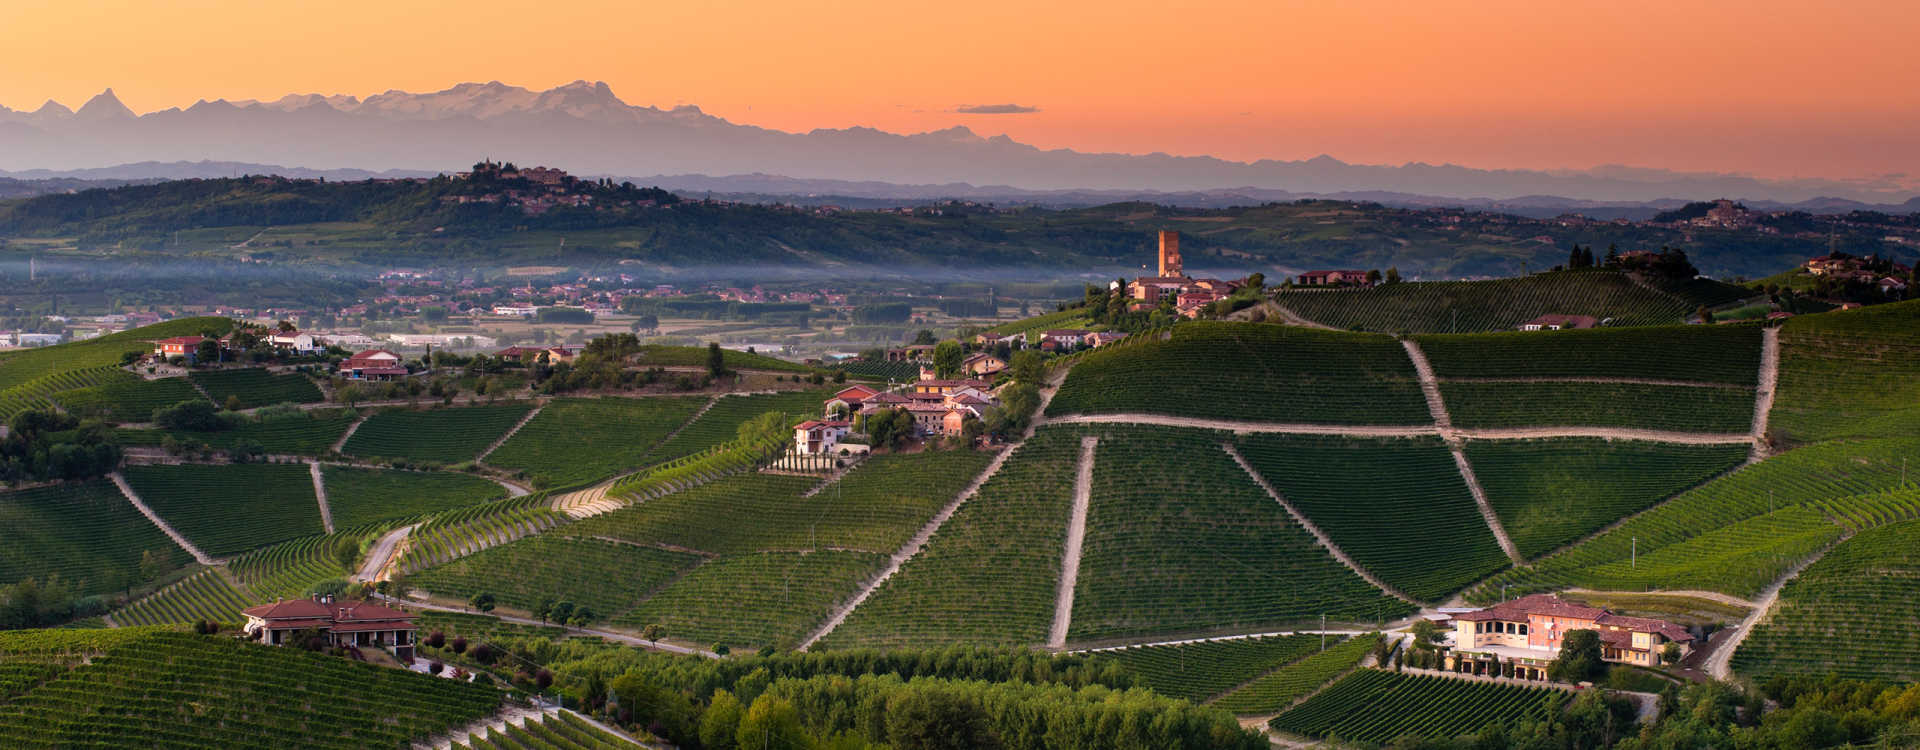 Image for Barbaresco Piedmont, Italy content section